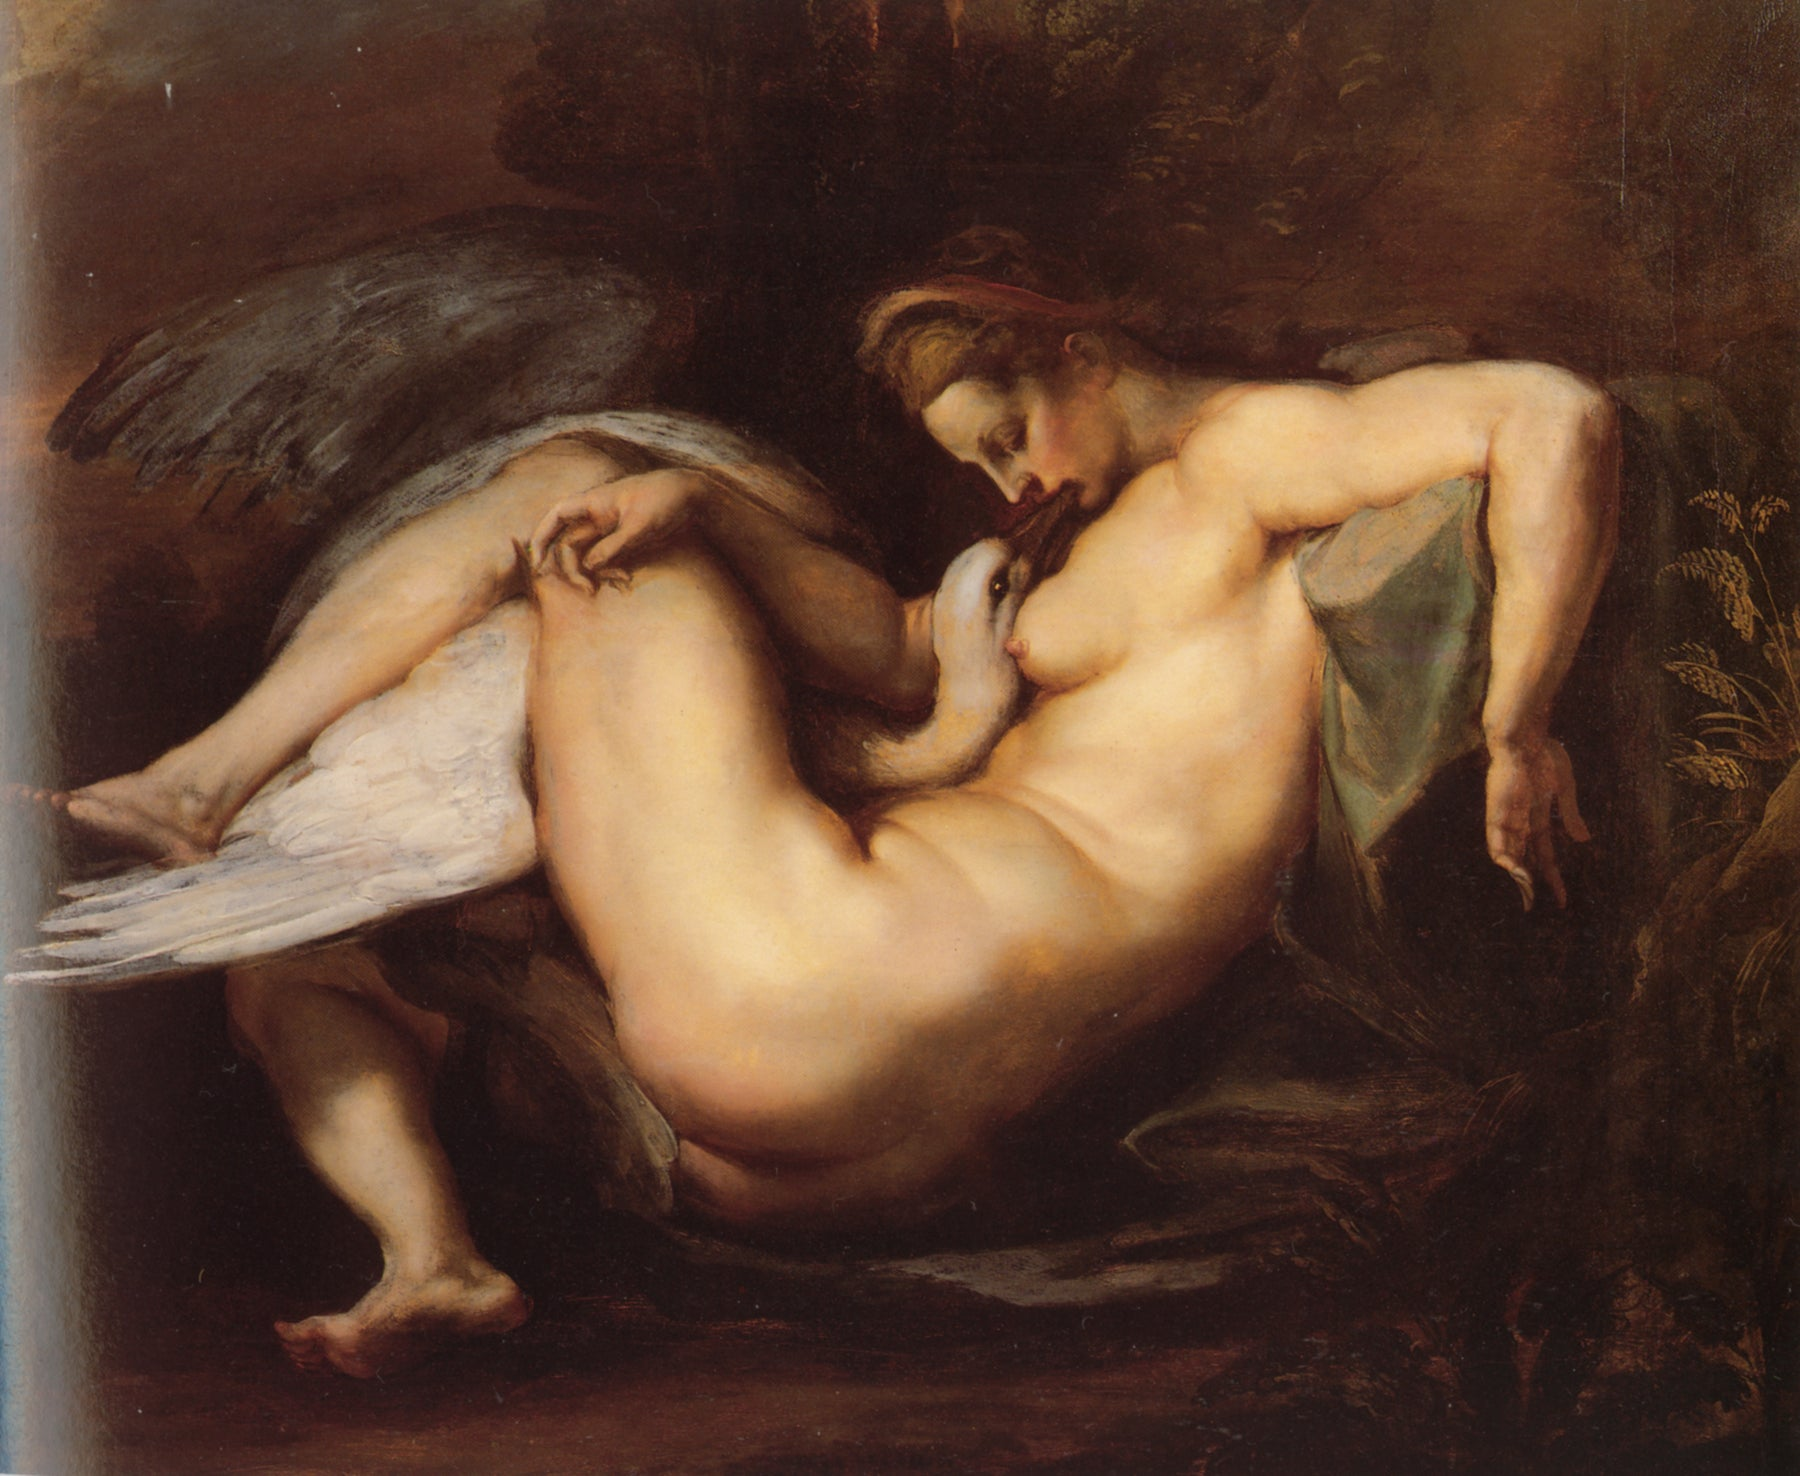 Leda and the Swan by Peter Paul Rubens Reproduction Oil Painting on Canvas